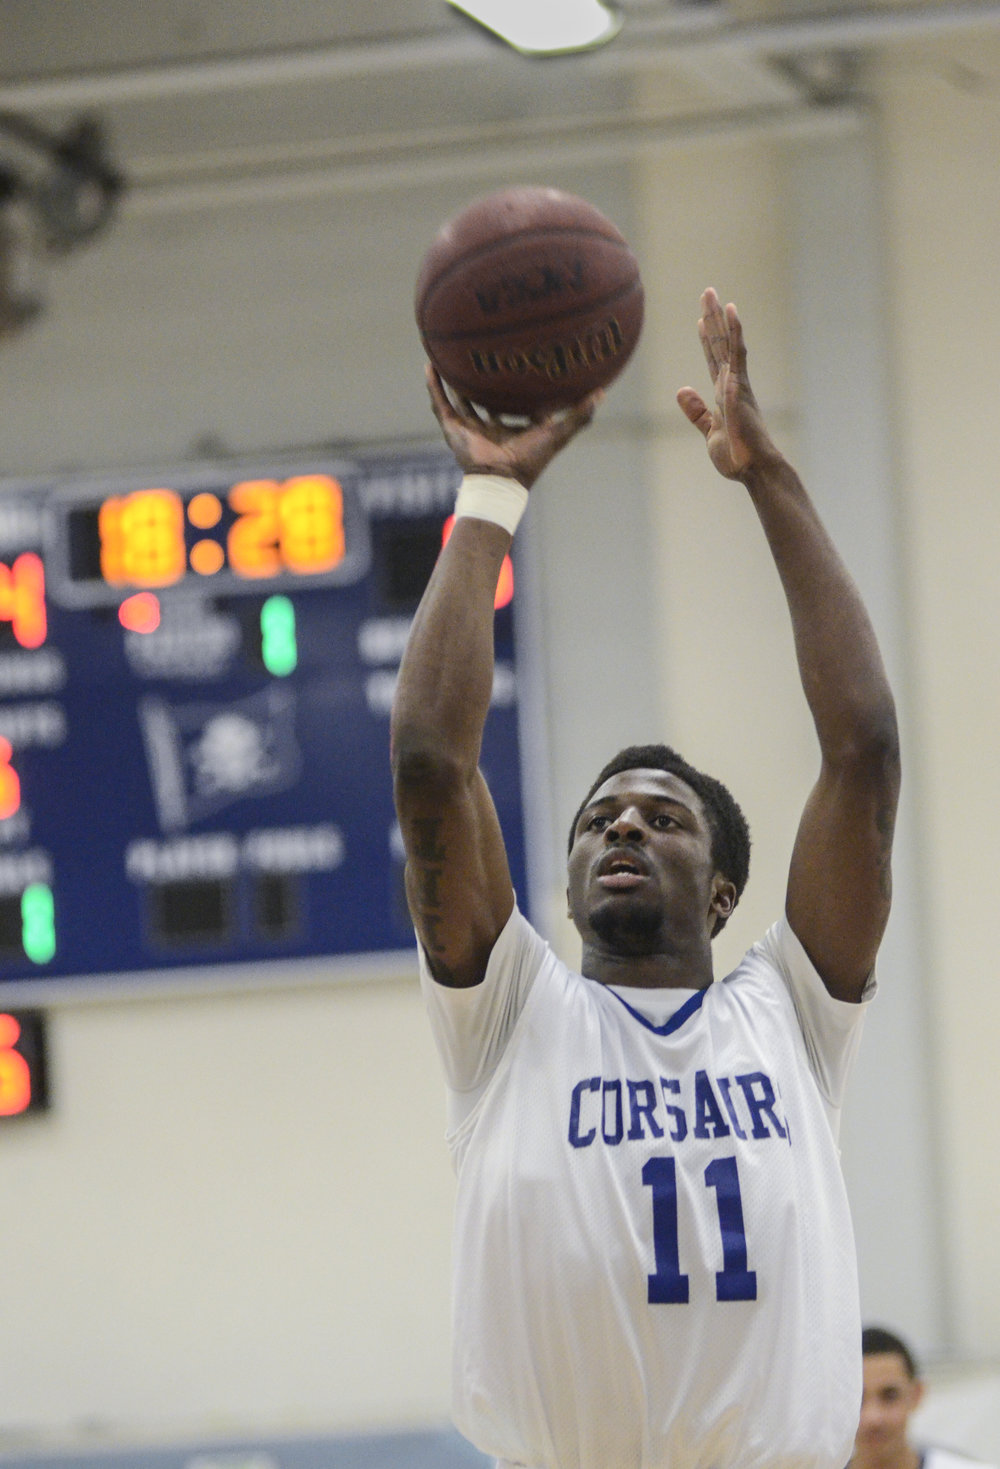 SMC freshman forward David Nwaba (11) goes for a shot. The SMC Corsairs beat the Citrus College Owls 73-68 on Wednesday, February 13, 2013 on the main campus of Santa Monica College in Santa Monica, Calif. Photo by Amy Gaskin.